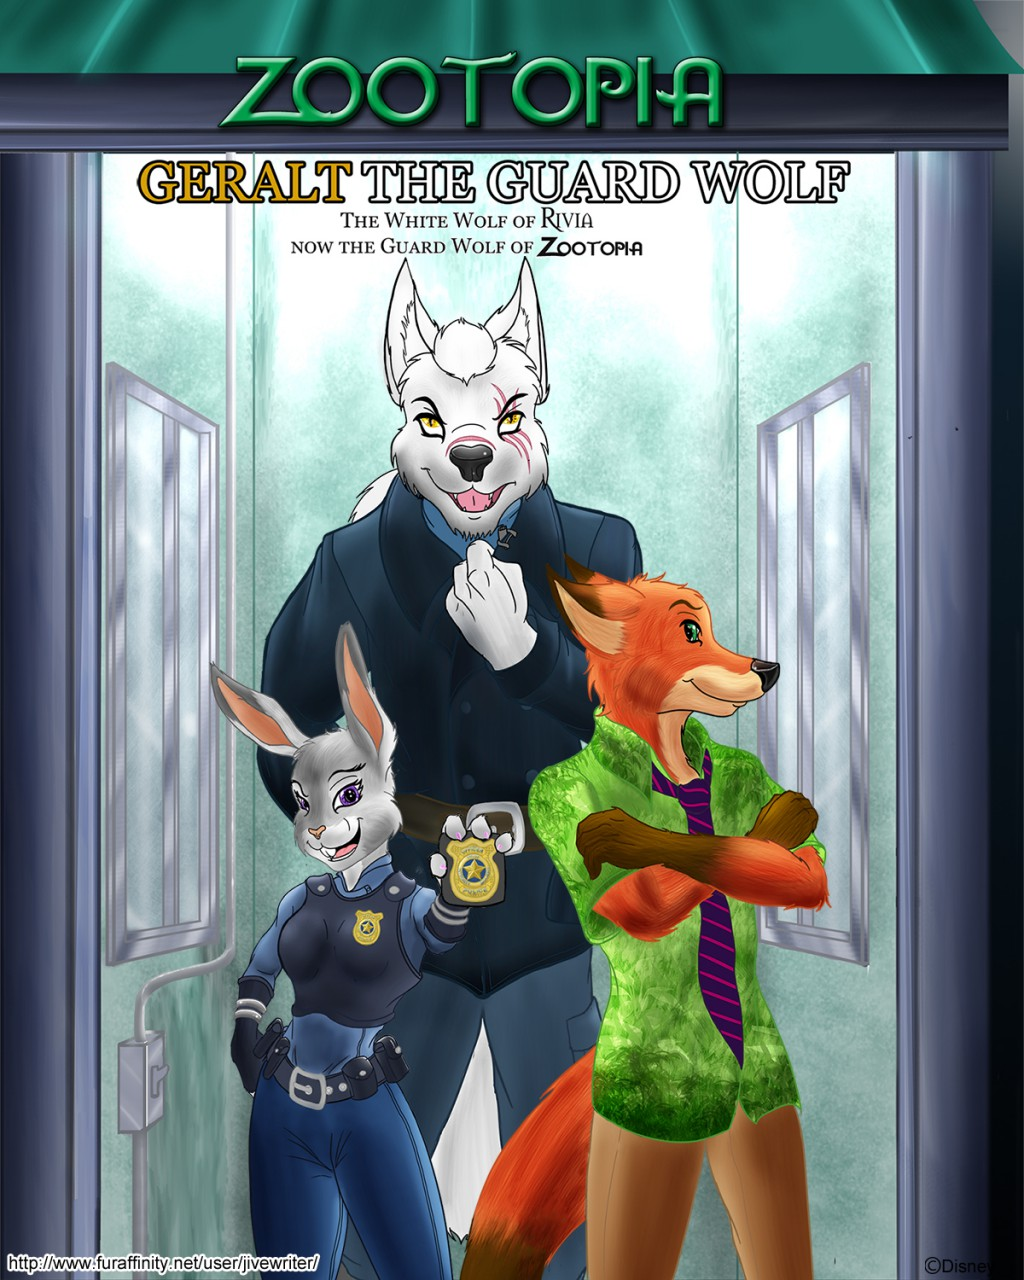 Zootopia - Geralt The Guard Wolf